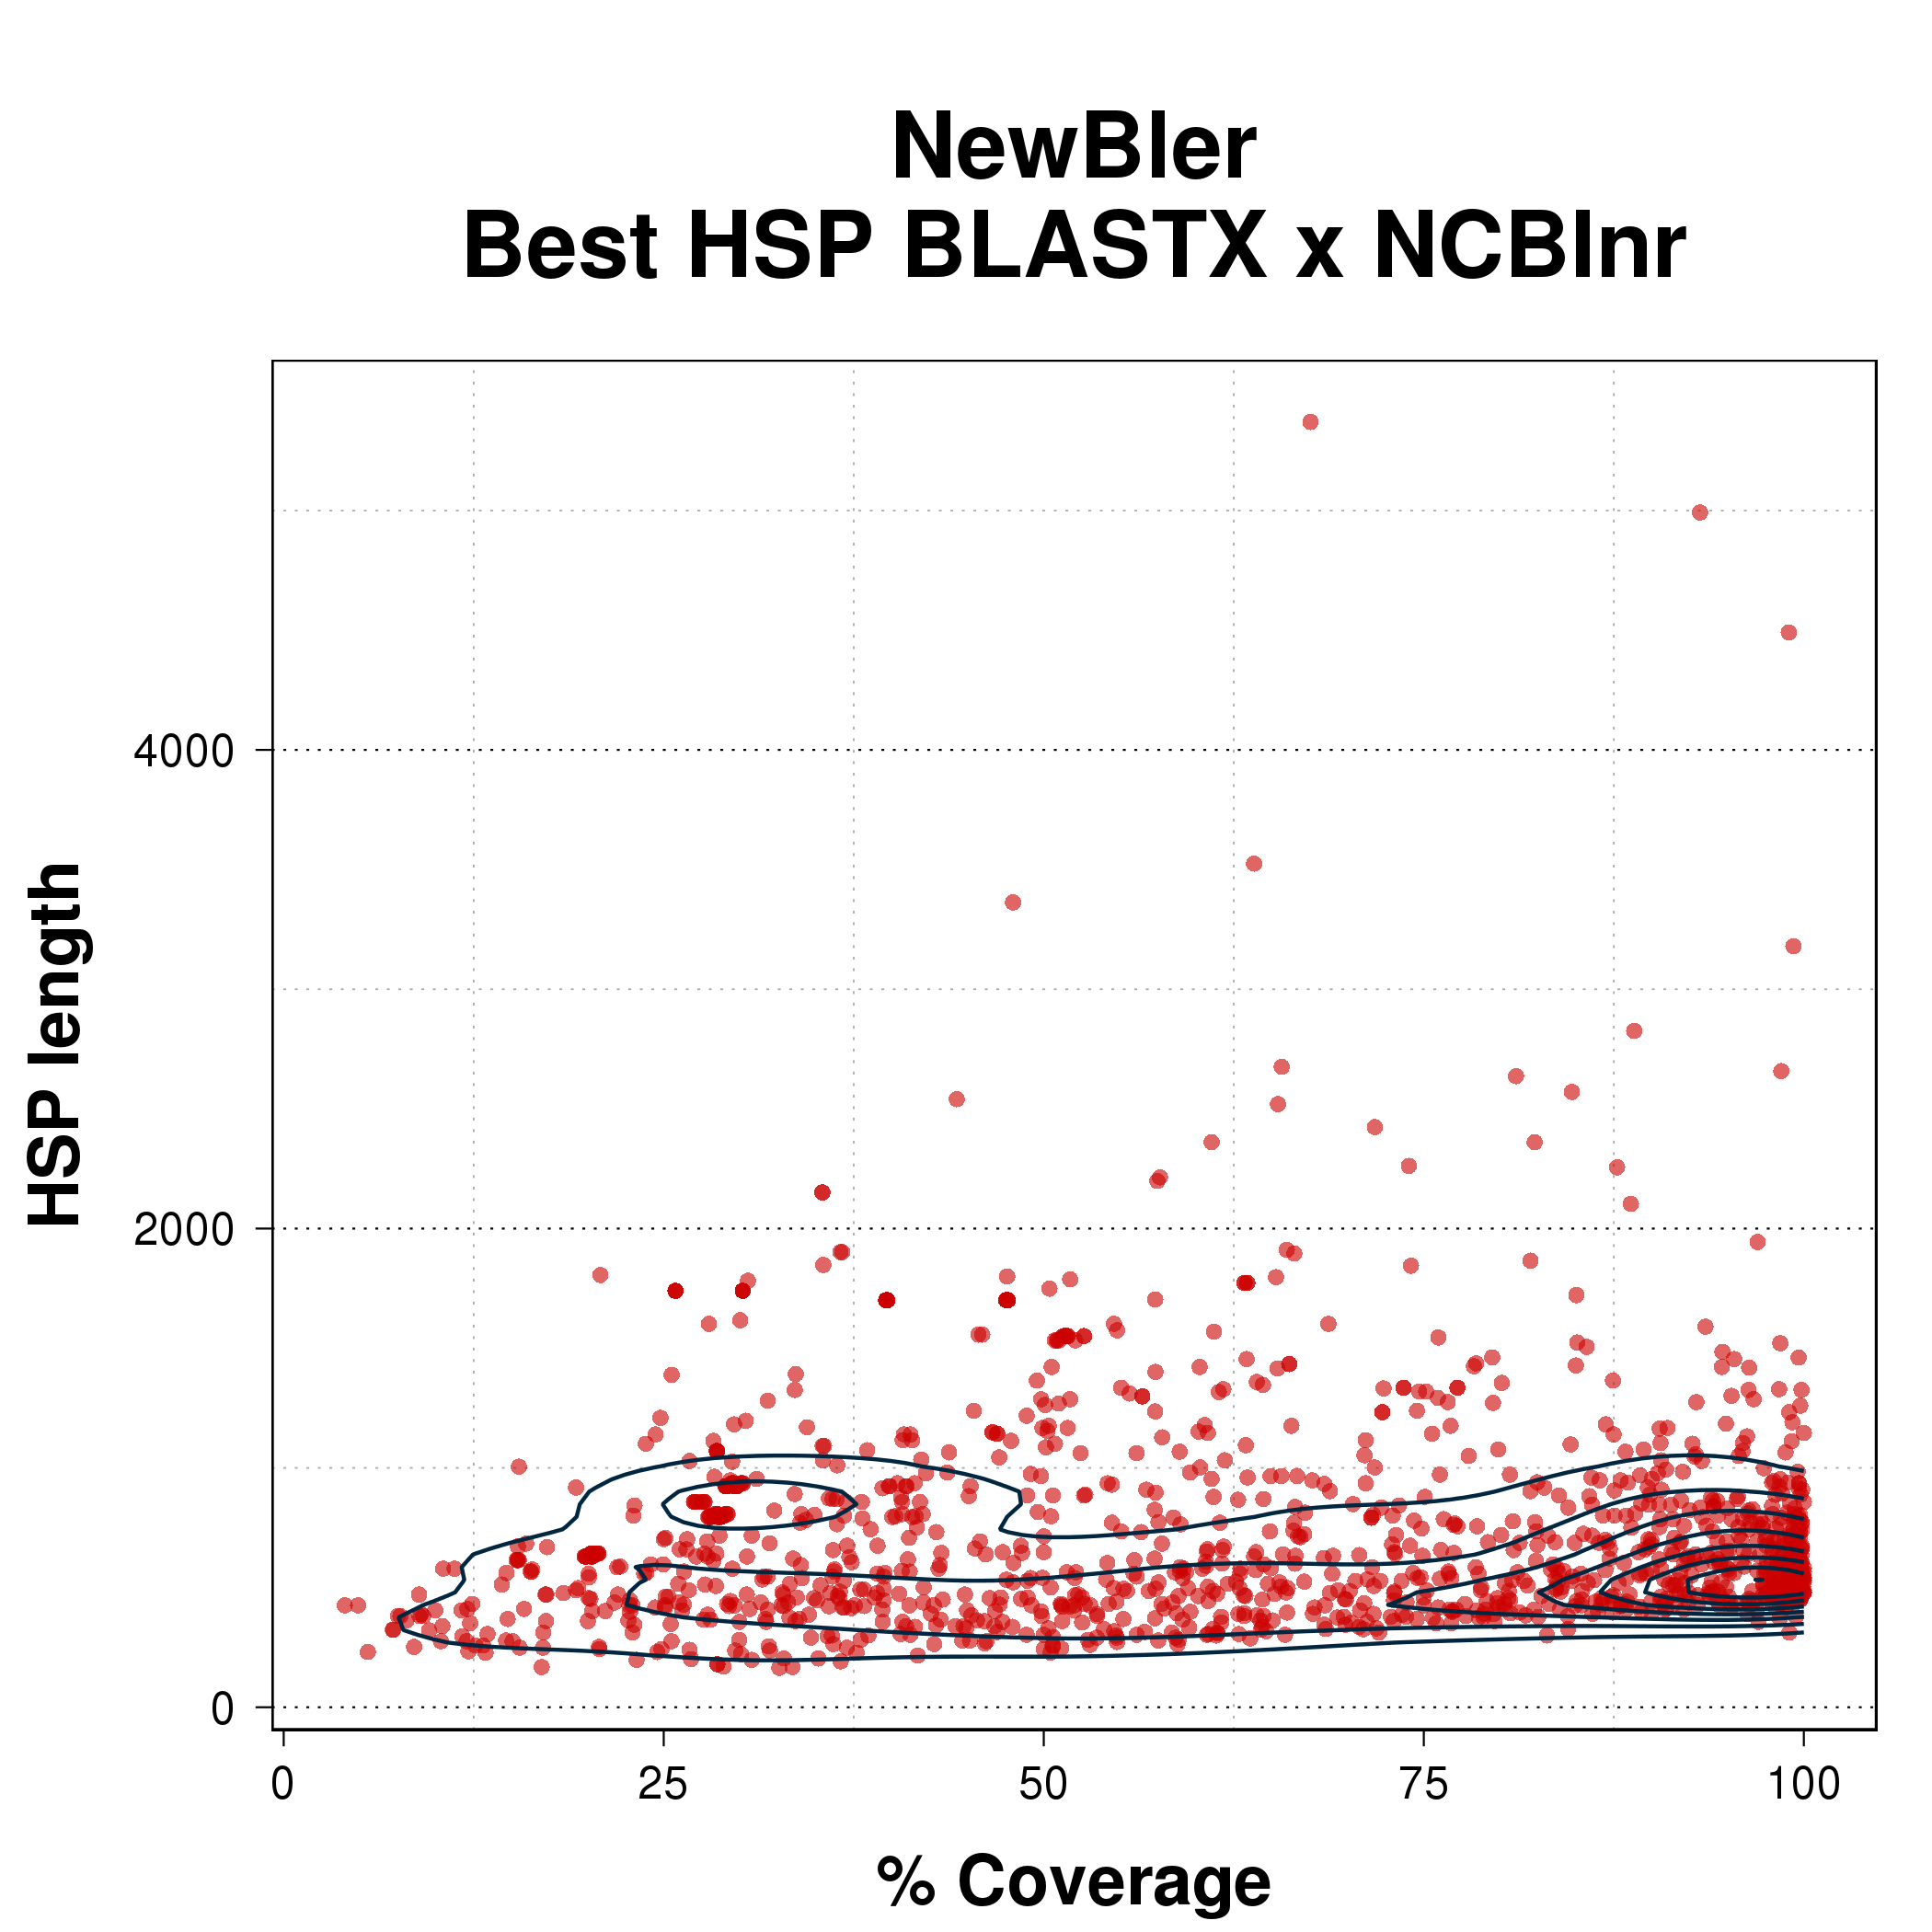 Scatterplot comparing coverage percent with HSP length for the best HSP from BLASTX of NewBler assembly against NCBInr.